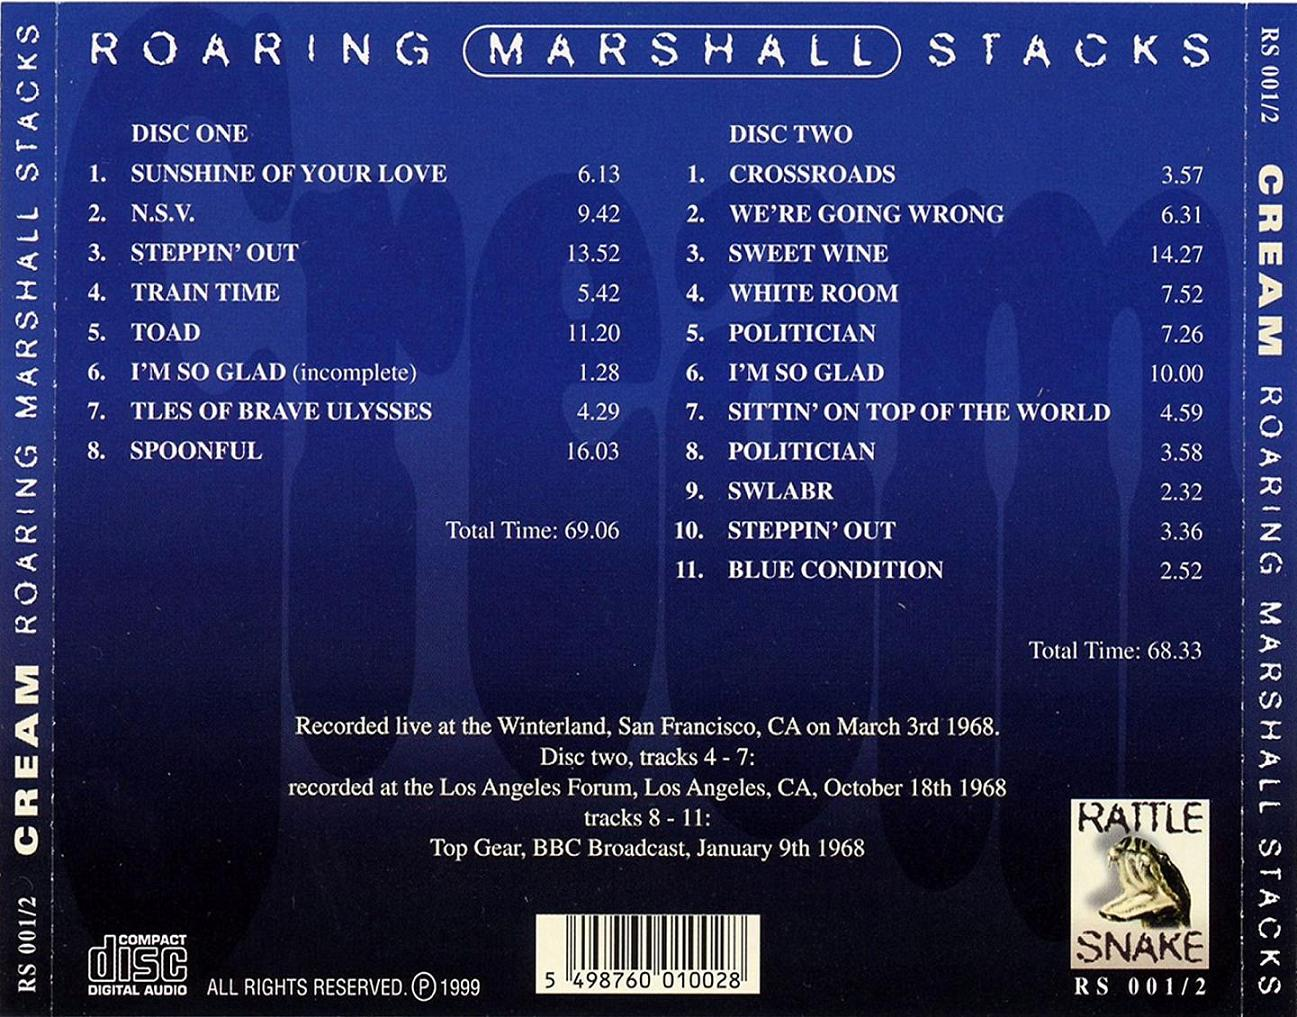 1968-03-10-ROARING_MARSHALL_STACKS-back